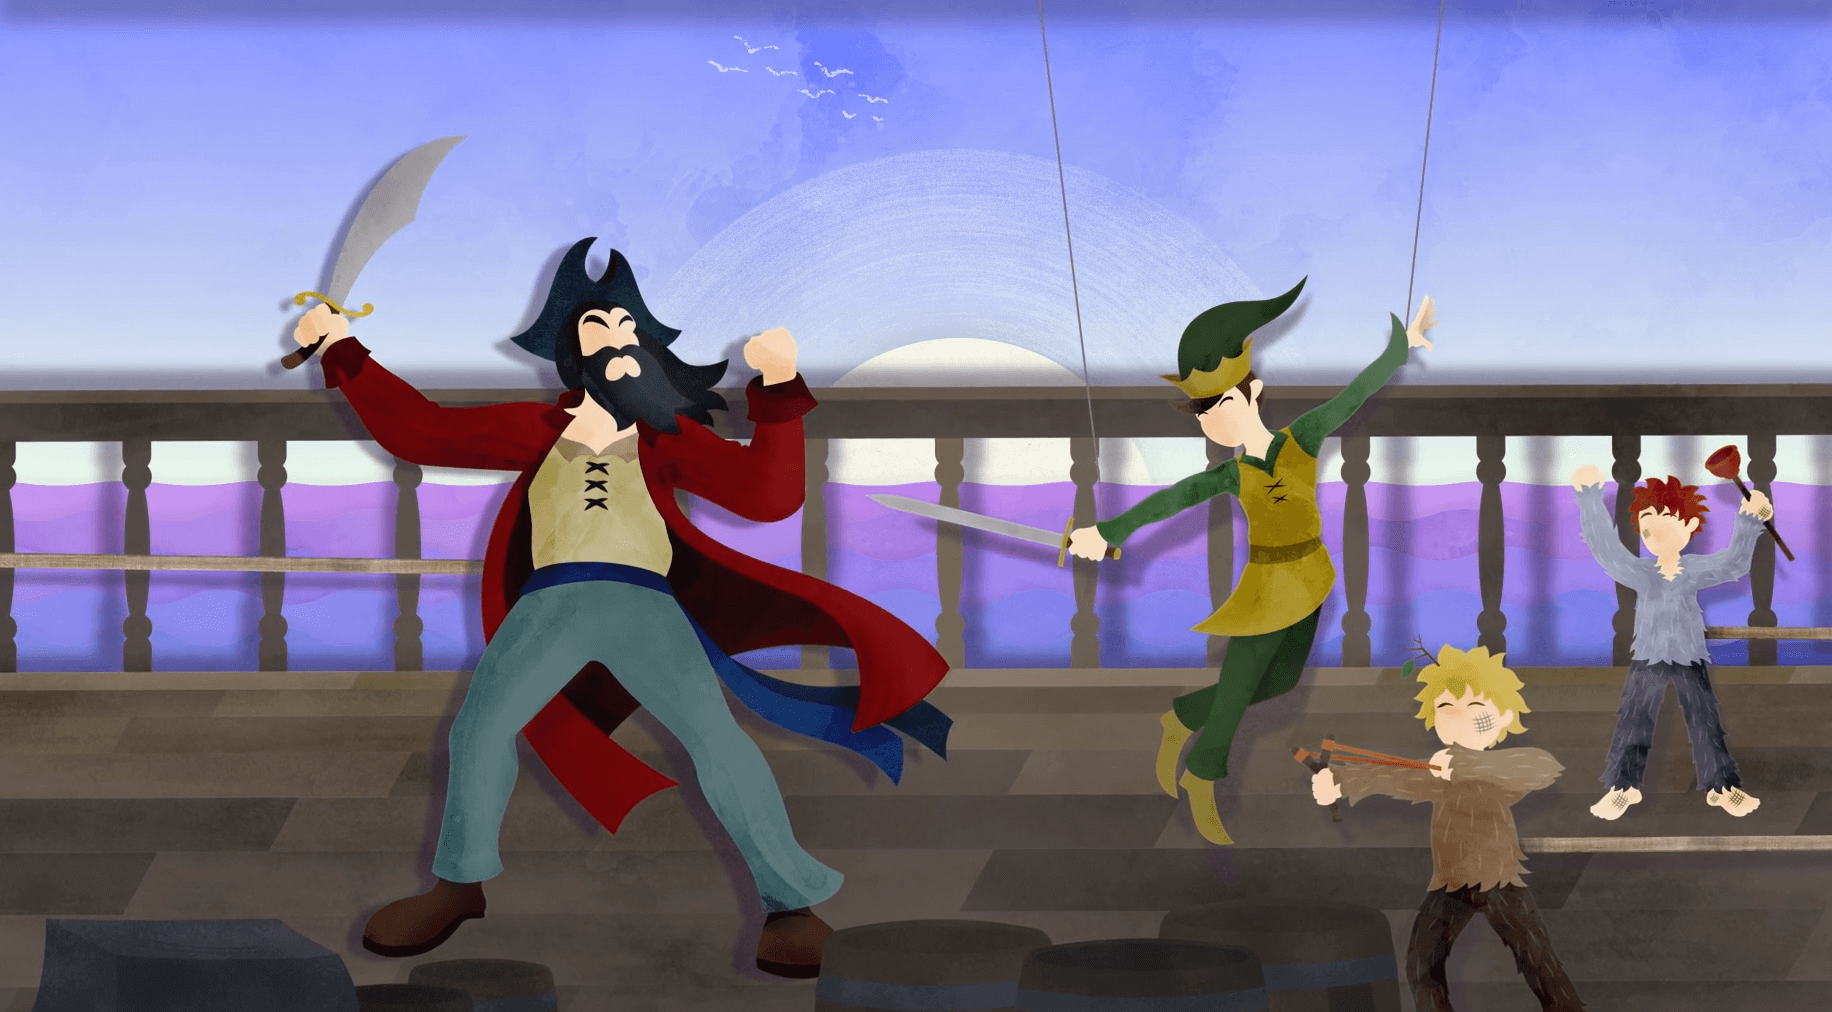 peter pan fighting captain hook on a ship